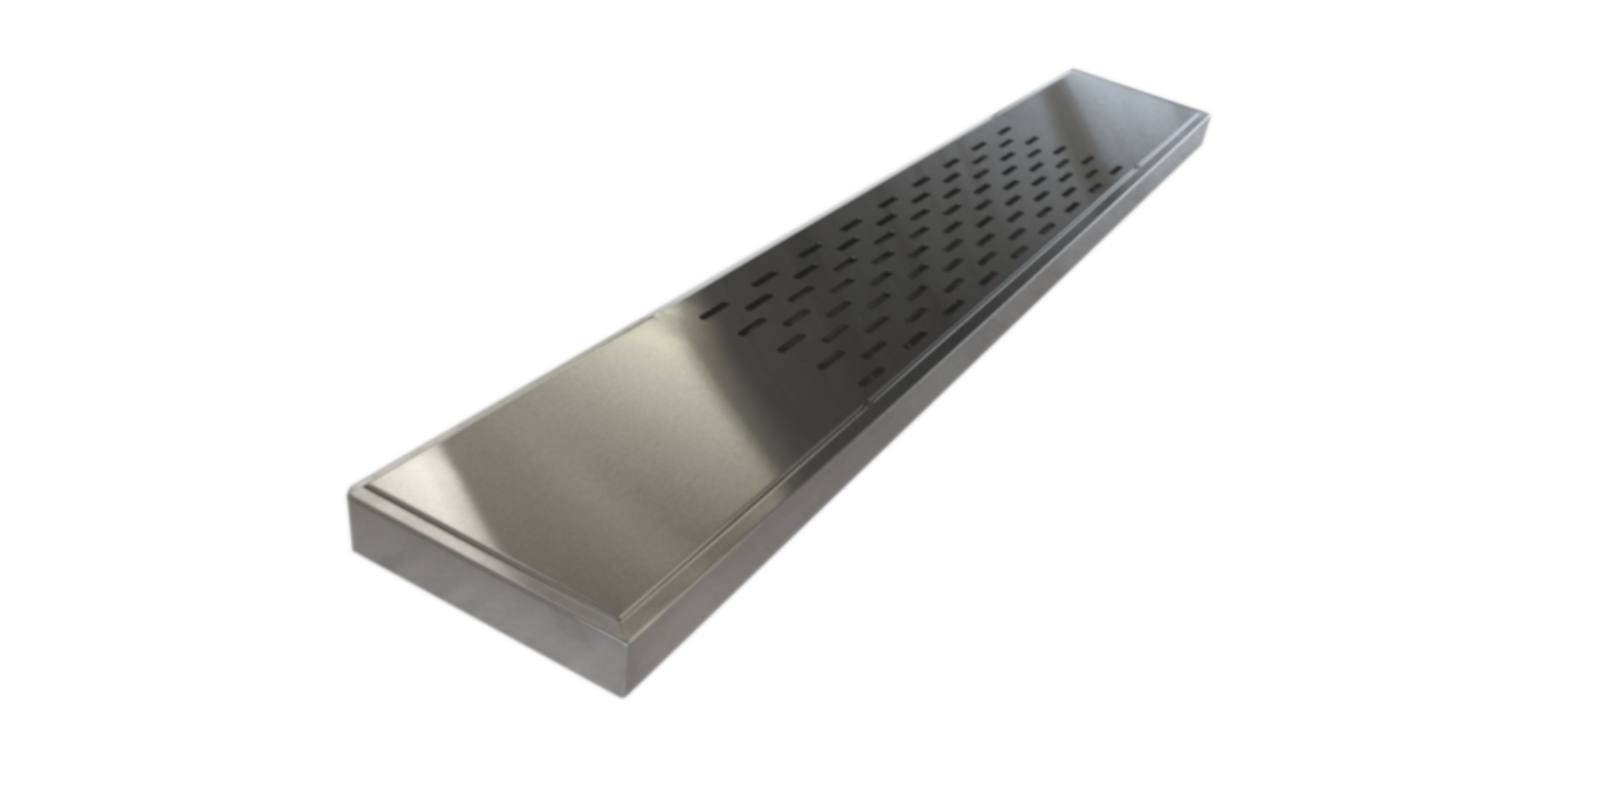 Stainless steel floating shelf with venting slots